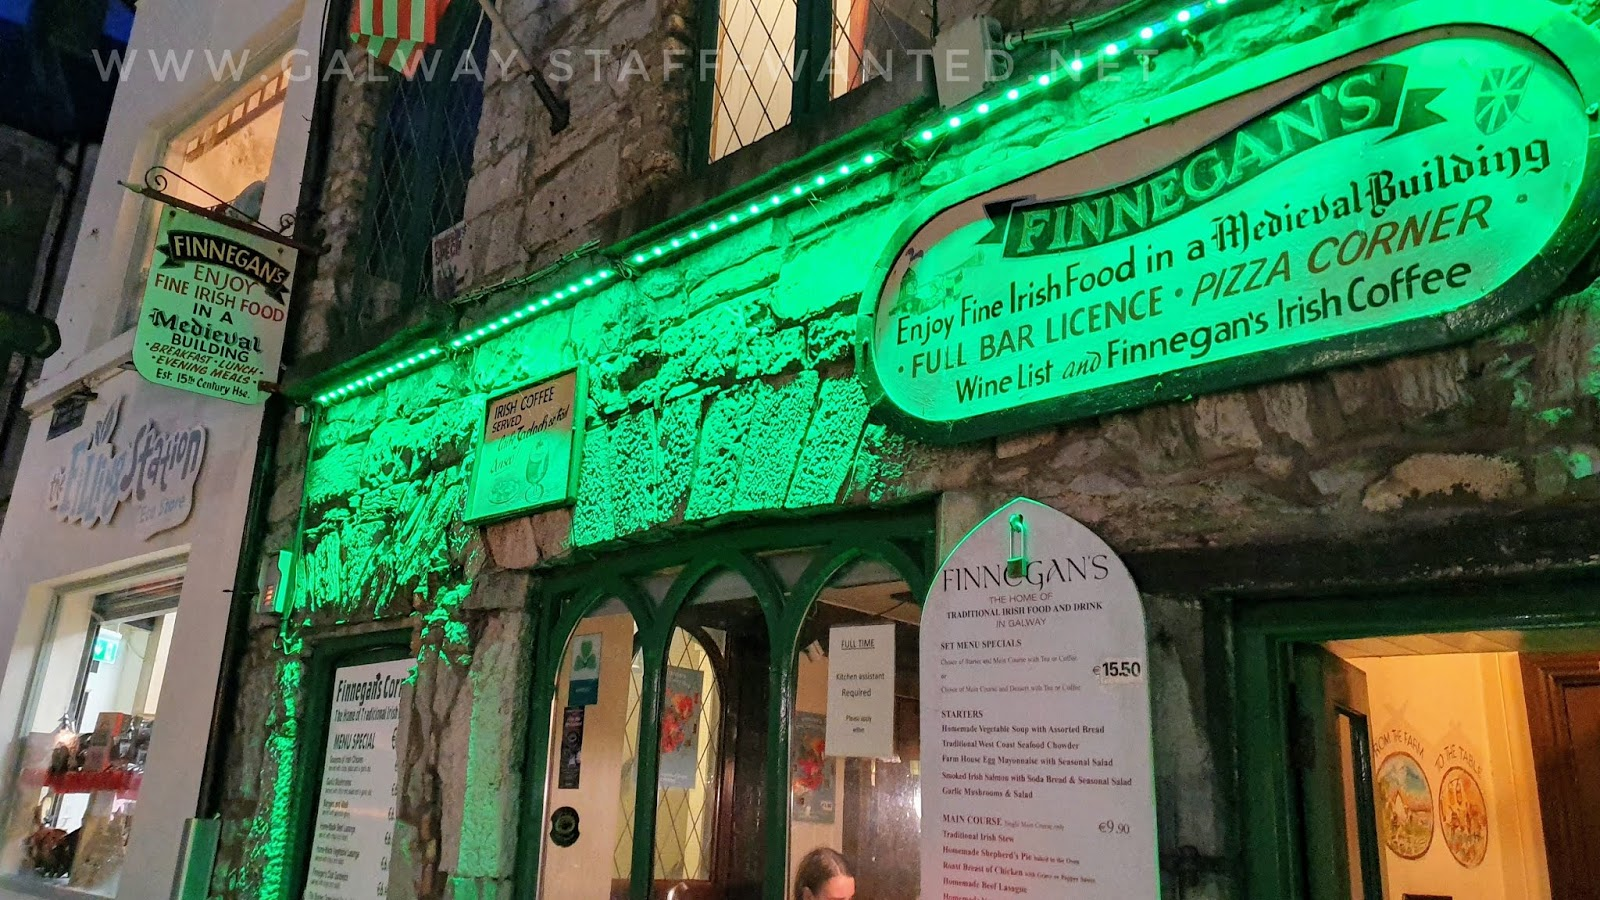 Stone-fronted medieval restaurant building with green fluro lighting illuminating the signage and stonework